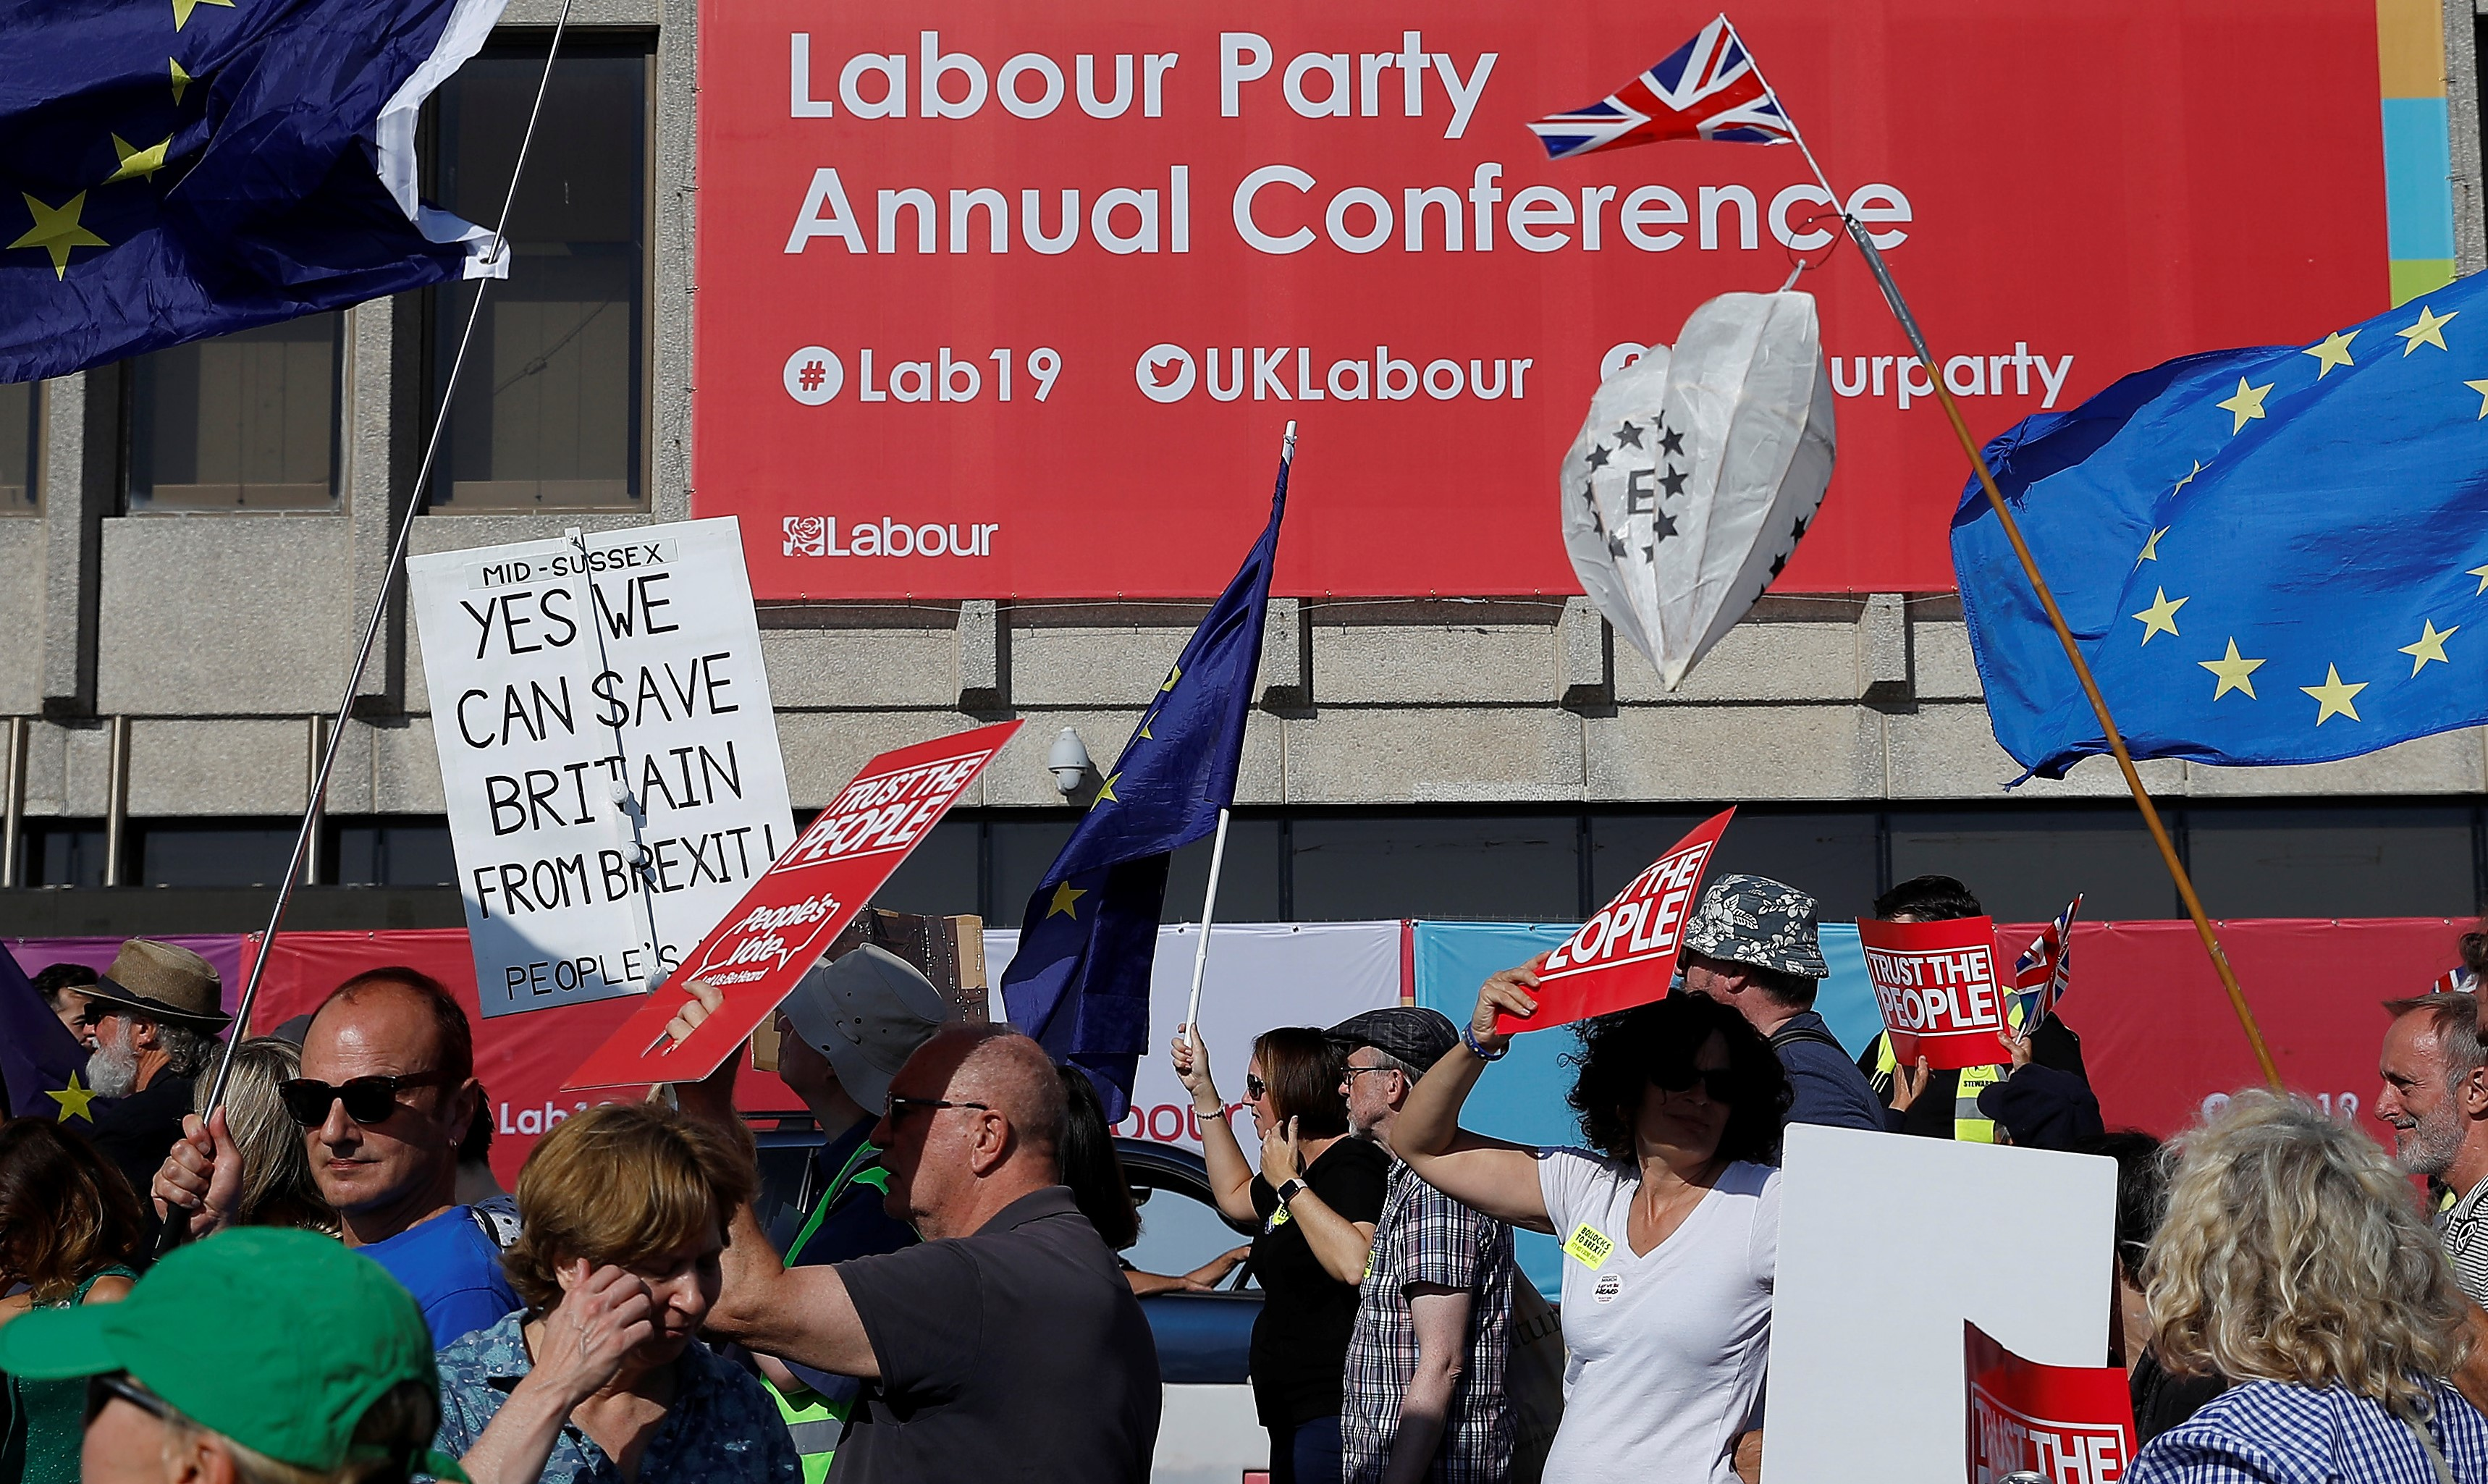 Participants in a People's Vote demonstration walk past the Brighton Centre where the Labour Party Annual Conference is being held, in Brighton, Britain, September 21, 2019.